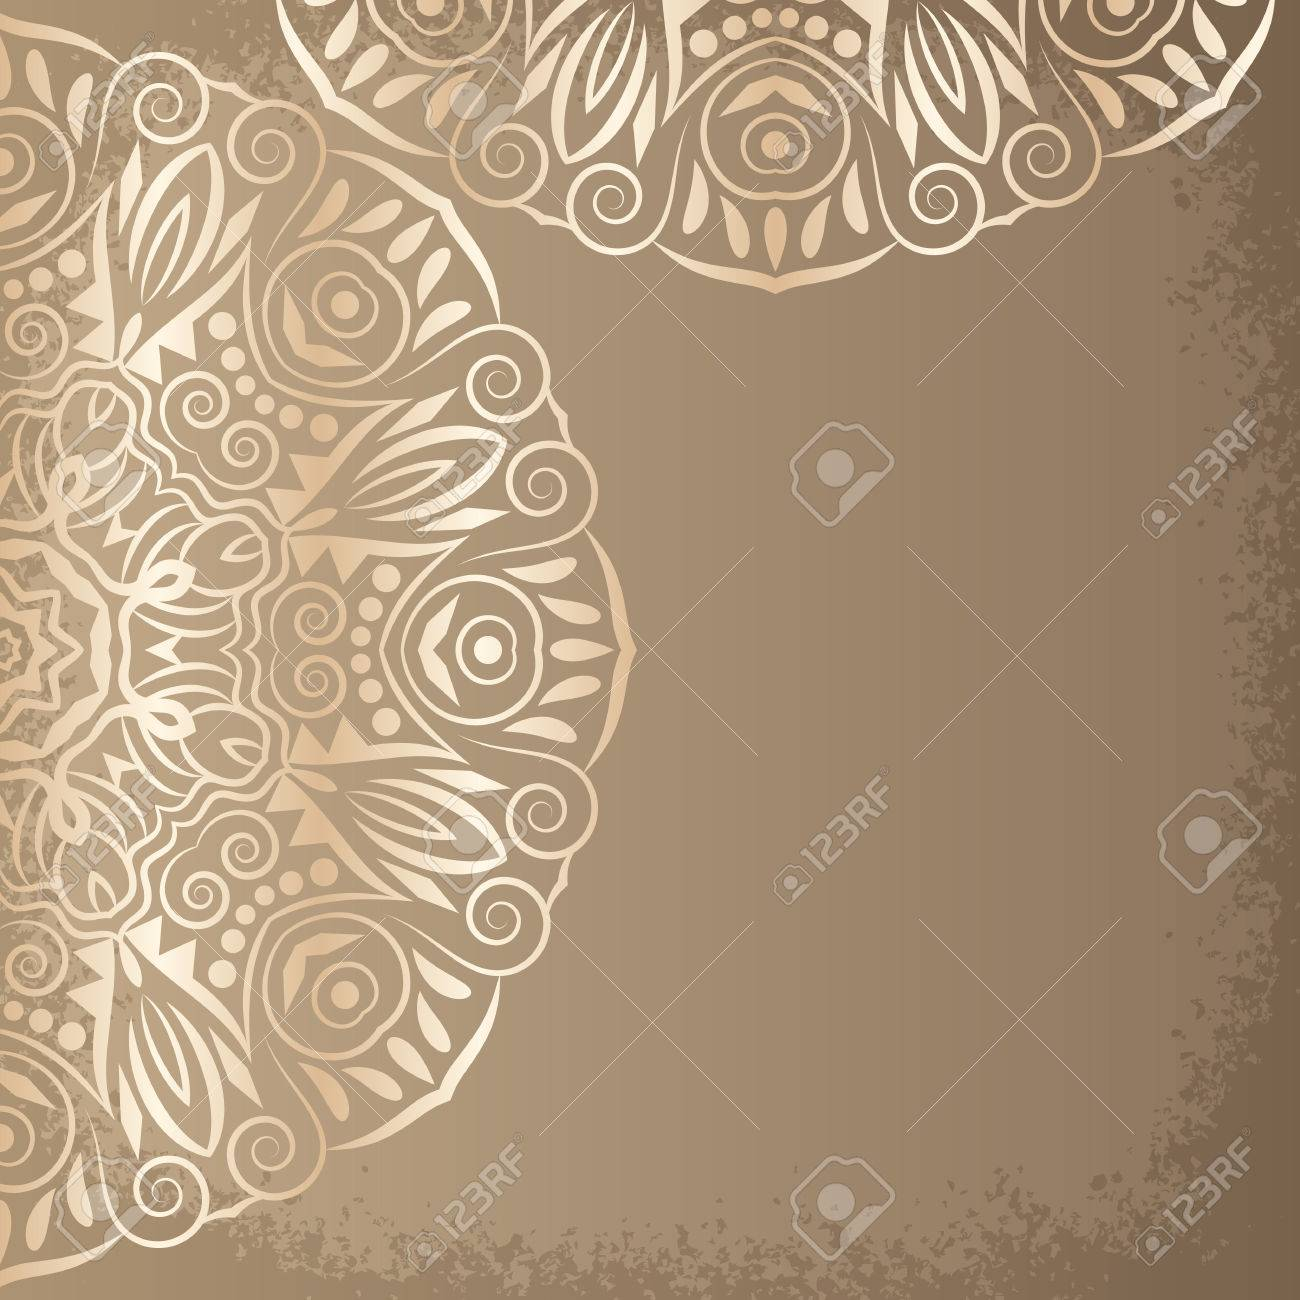 mandala gold background bohemian style vintage pattern with